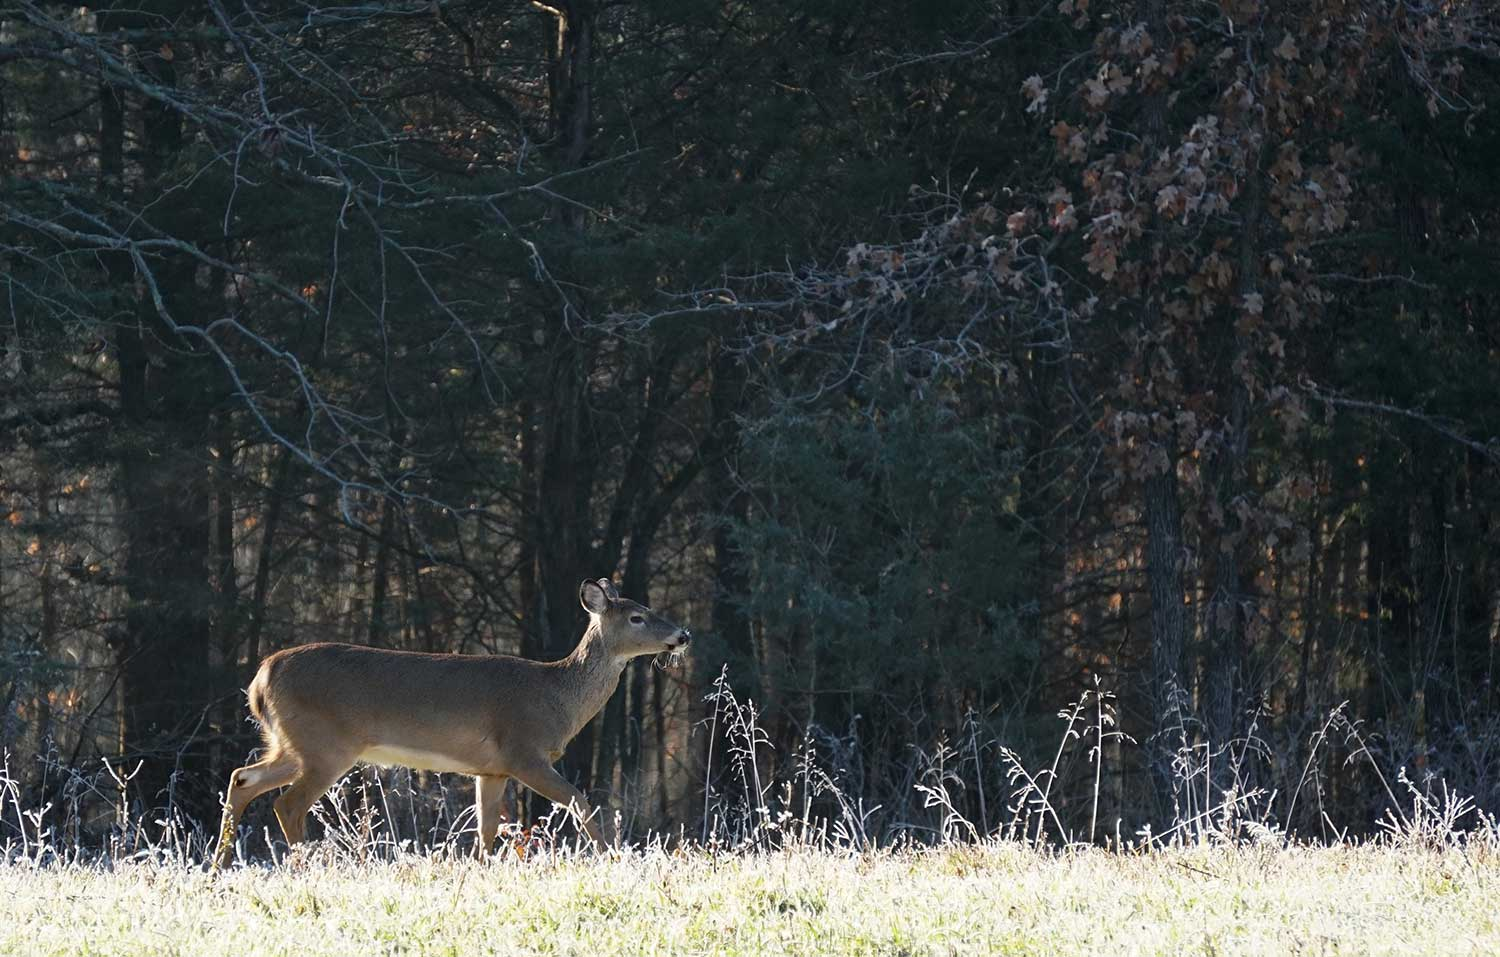 A whitetail doe walking through a field during the daytime.